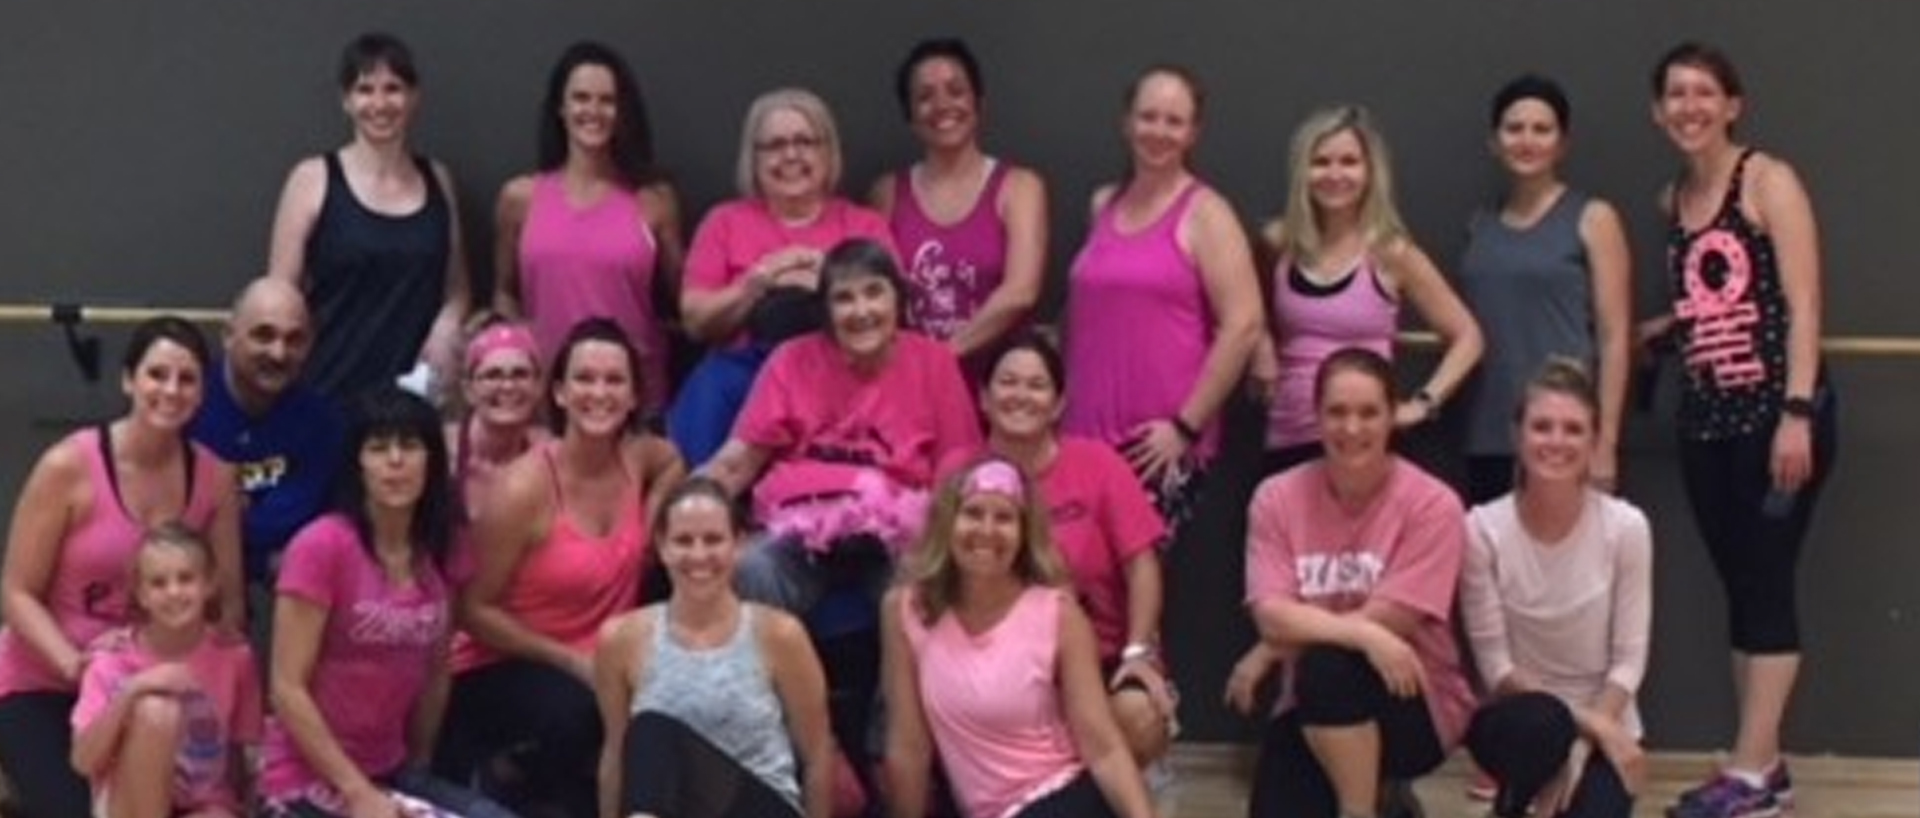 A large group of women wearing pink posing for a photo